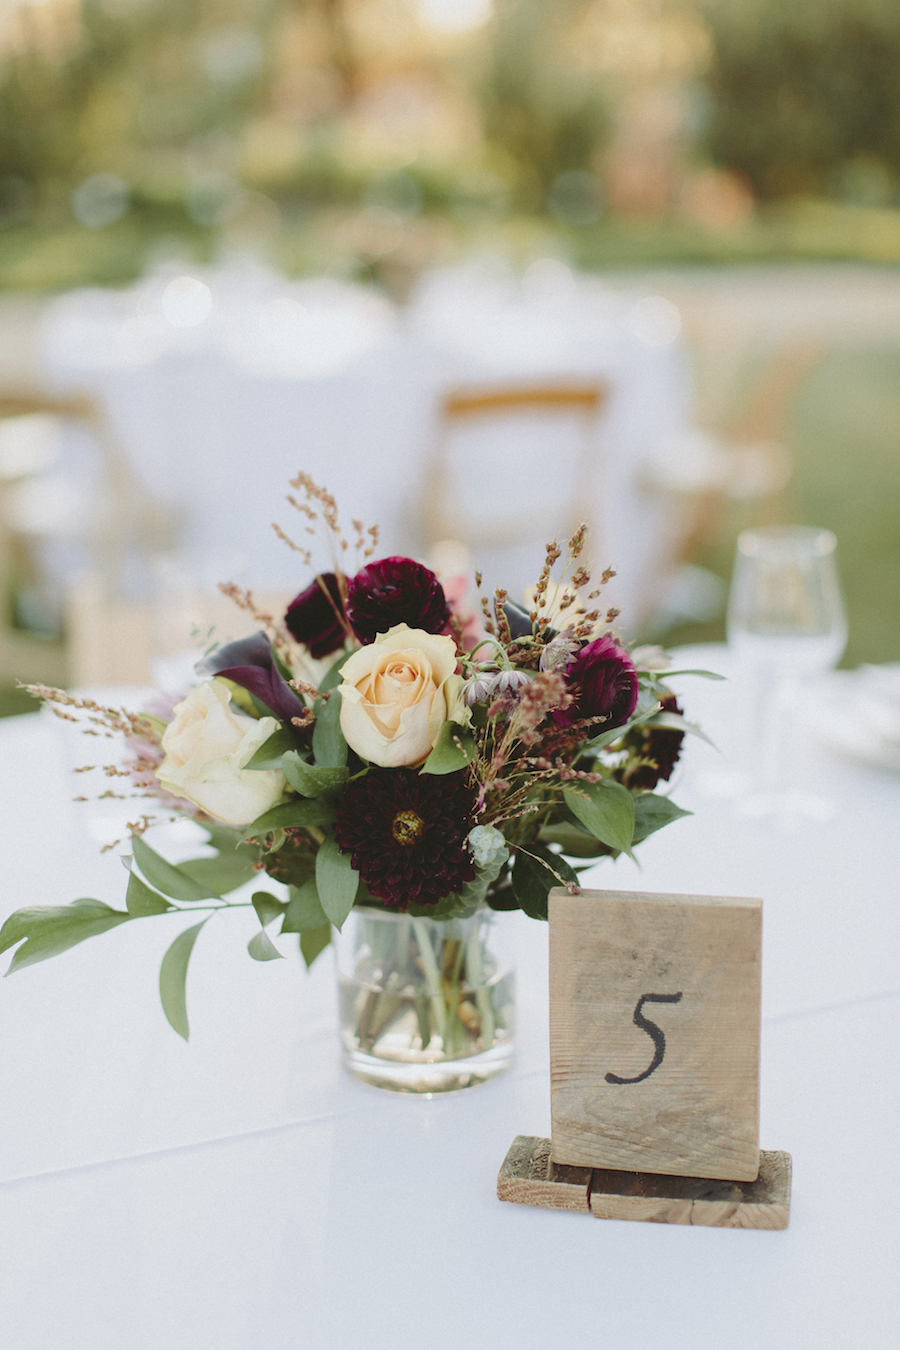 Justina + David's Chic Outdoor Ranch Wedding Featured on Wedding Chicks27.jpg